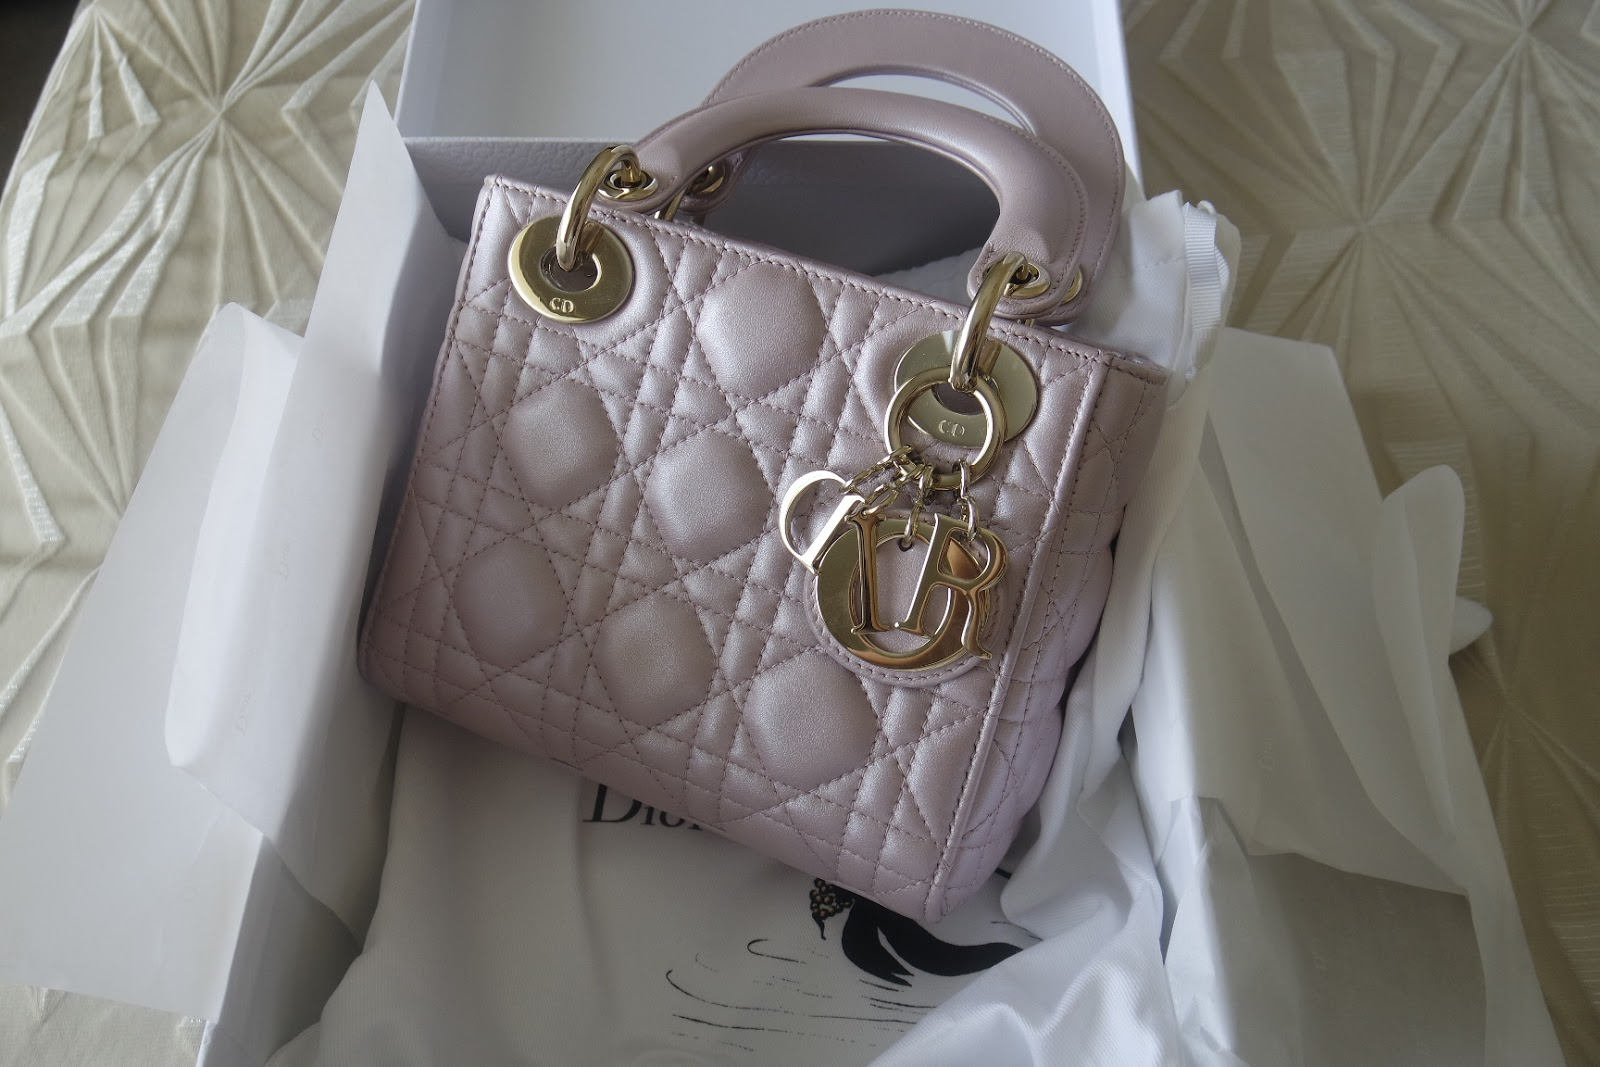 THE BEAUTY OF THE LADY | LADY DIOR MINI